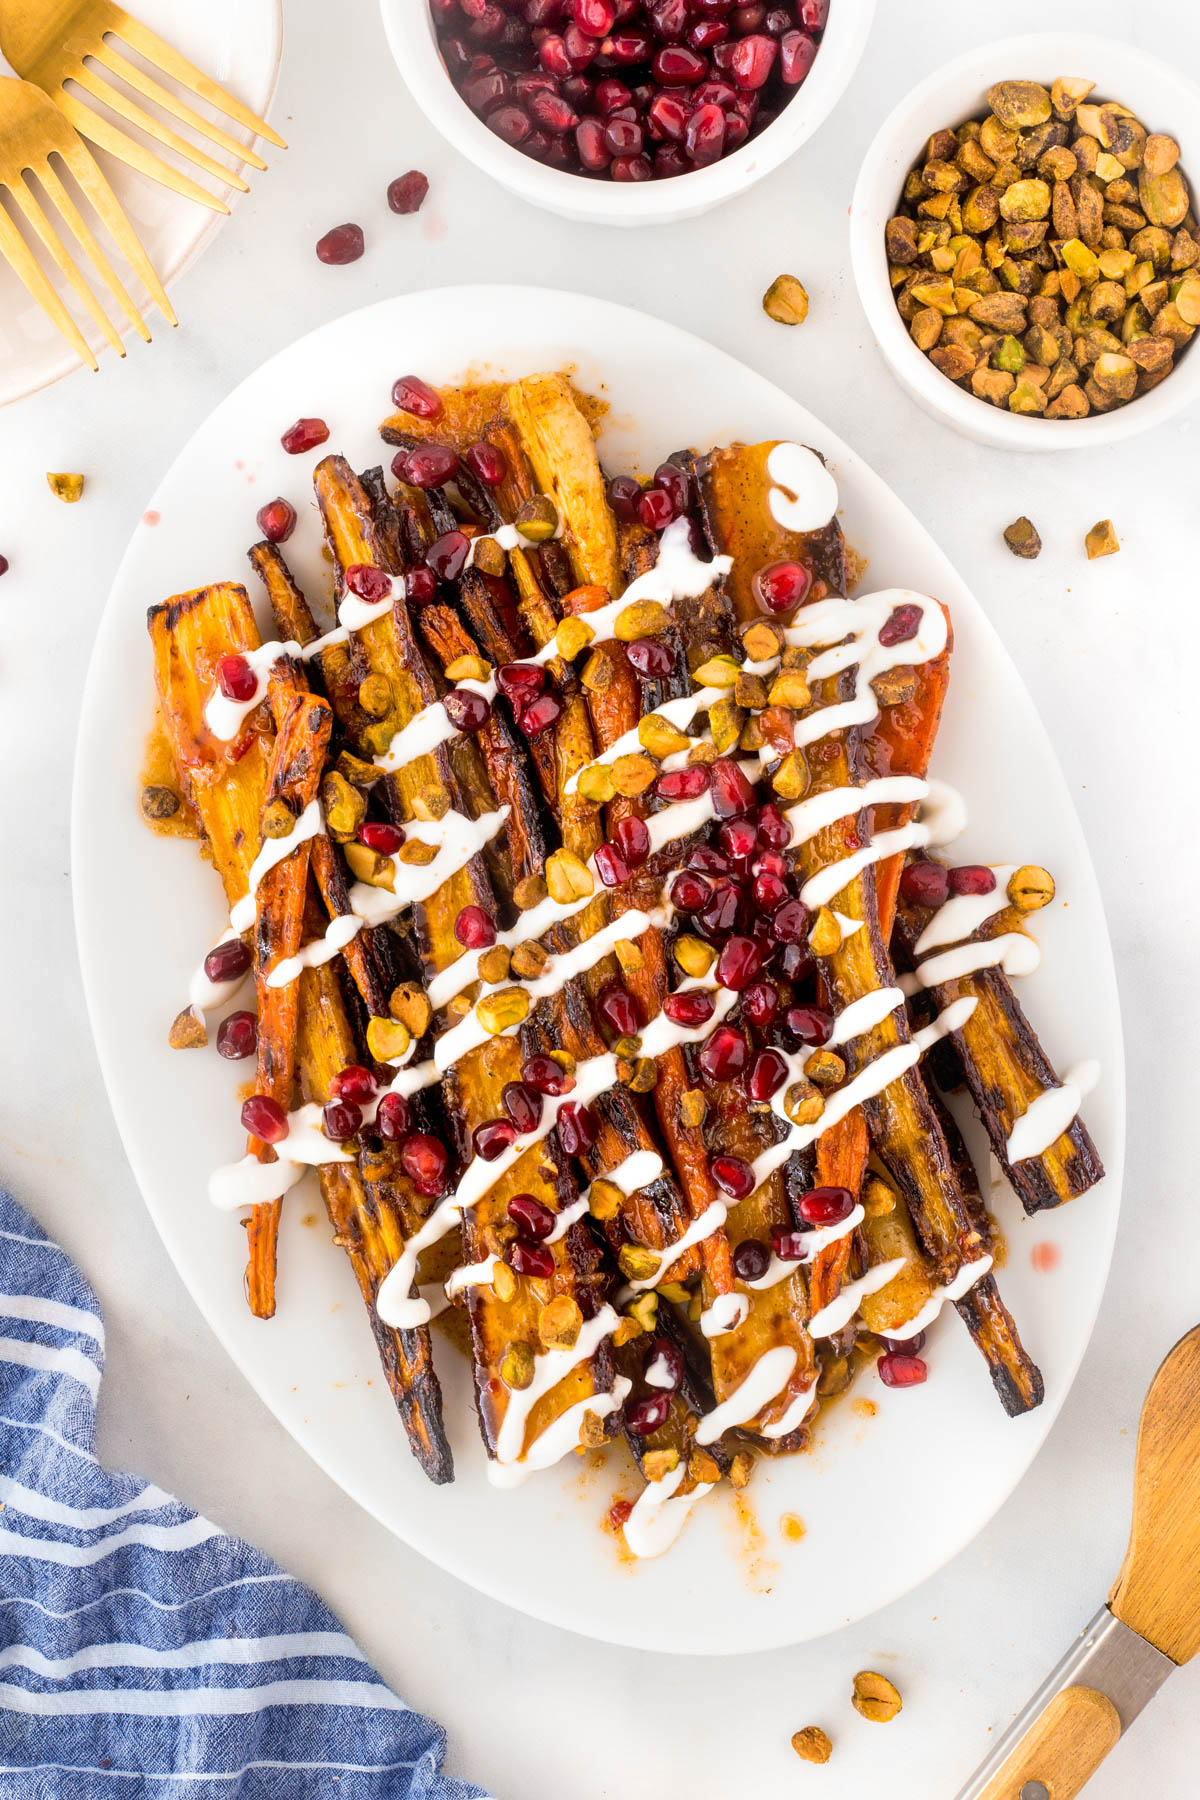 Harissa grilled carrots on a white serving platter with forks, drizzled with yogurt